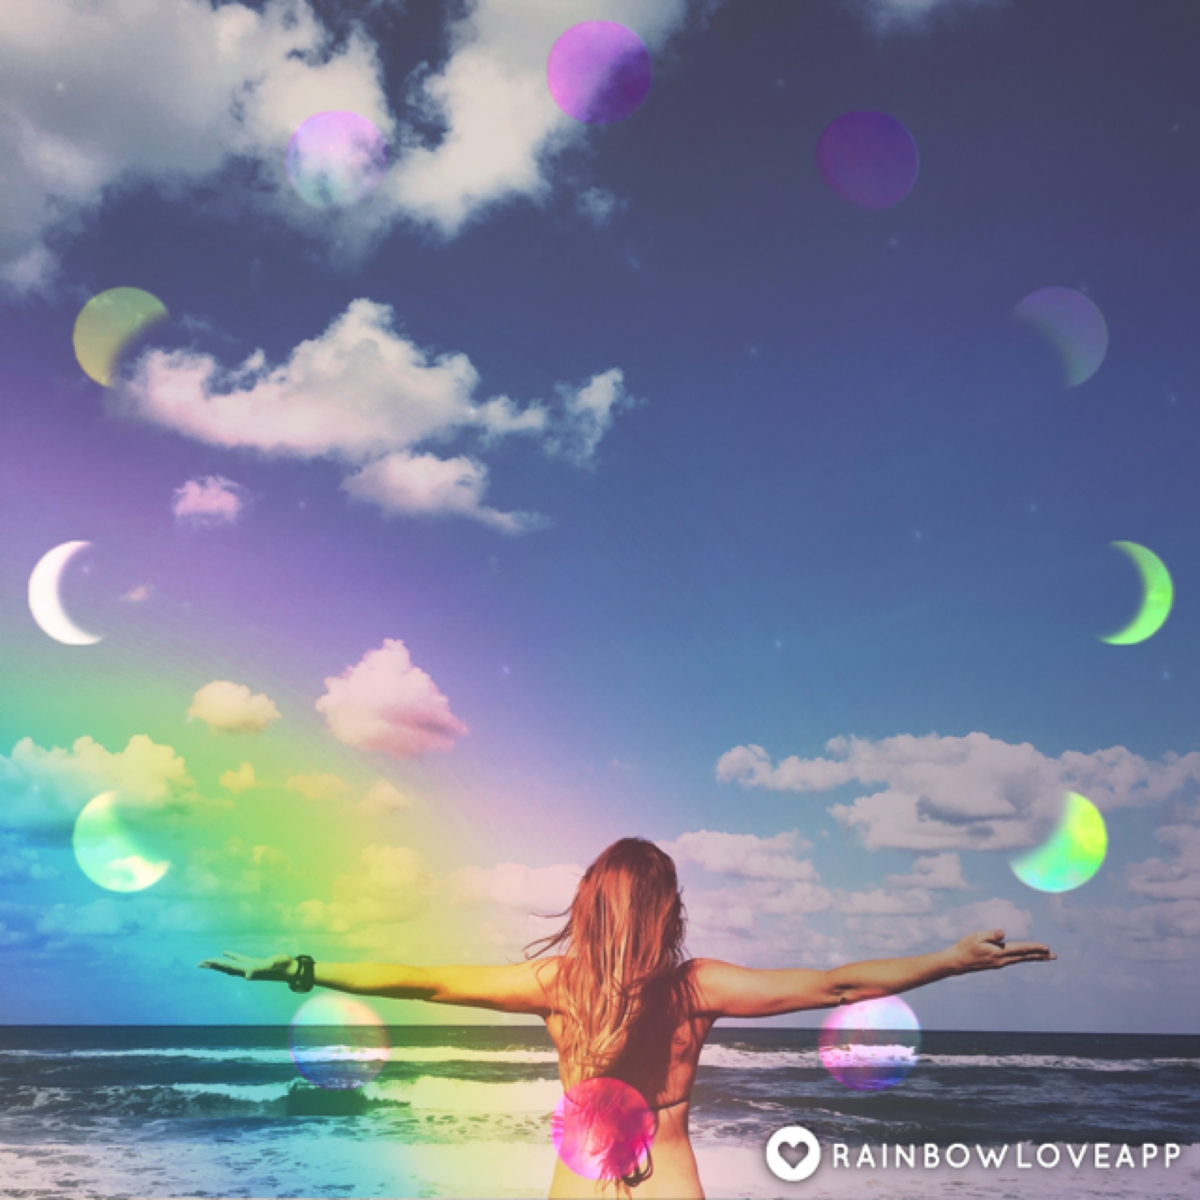 Rainbow-Love-App-Best-Photo-Art-Colorful-Rainbows-Moon-Filters.JPG